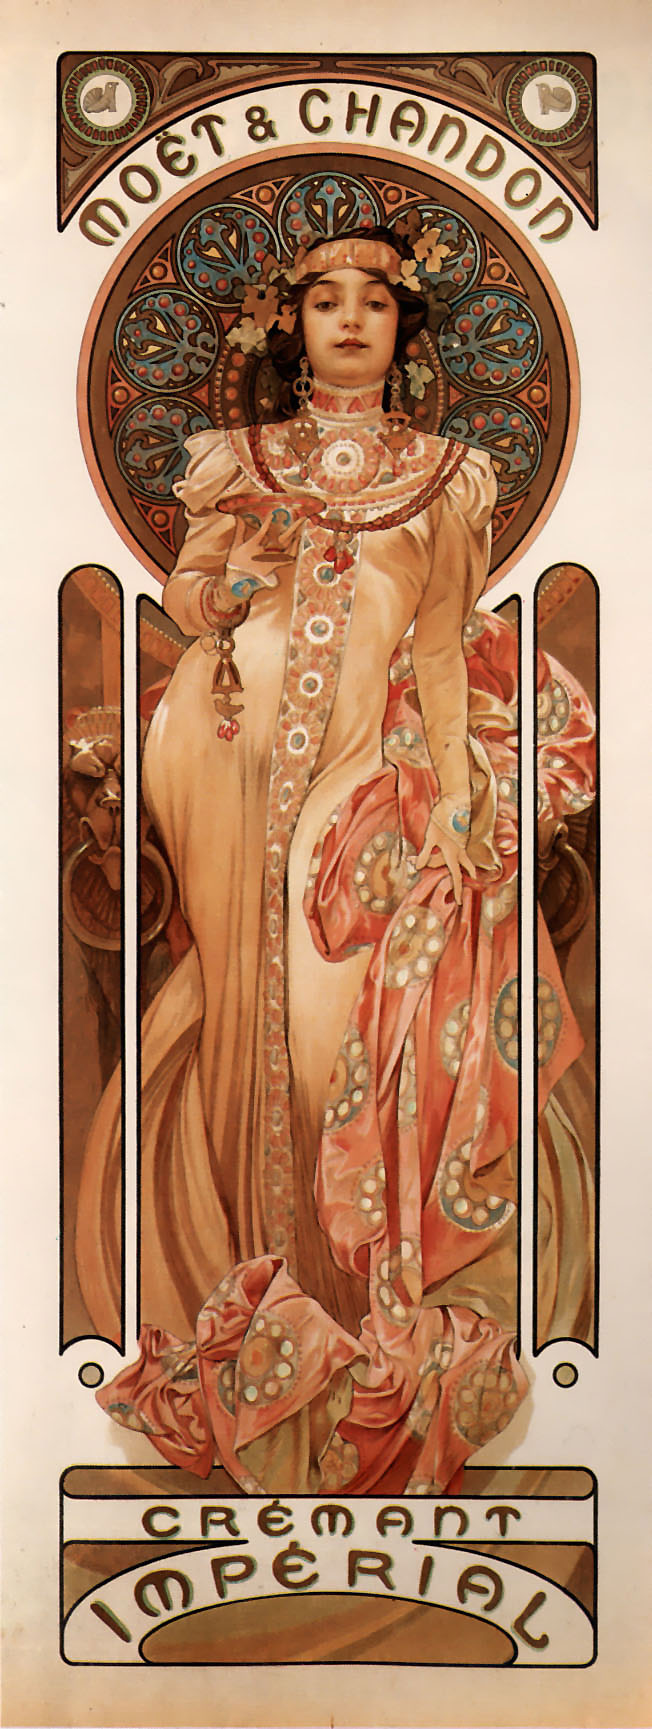 alfons mucha on pinterest alphonse mucha art nouveau. Black Bedroom Furniture Sets. Home Design Ideas